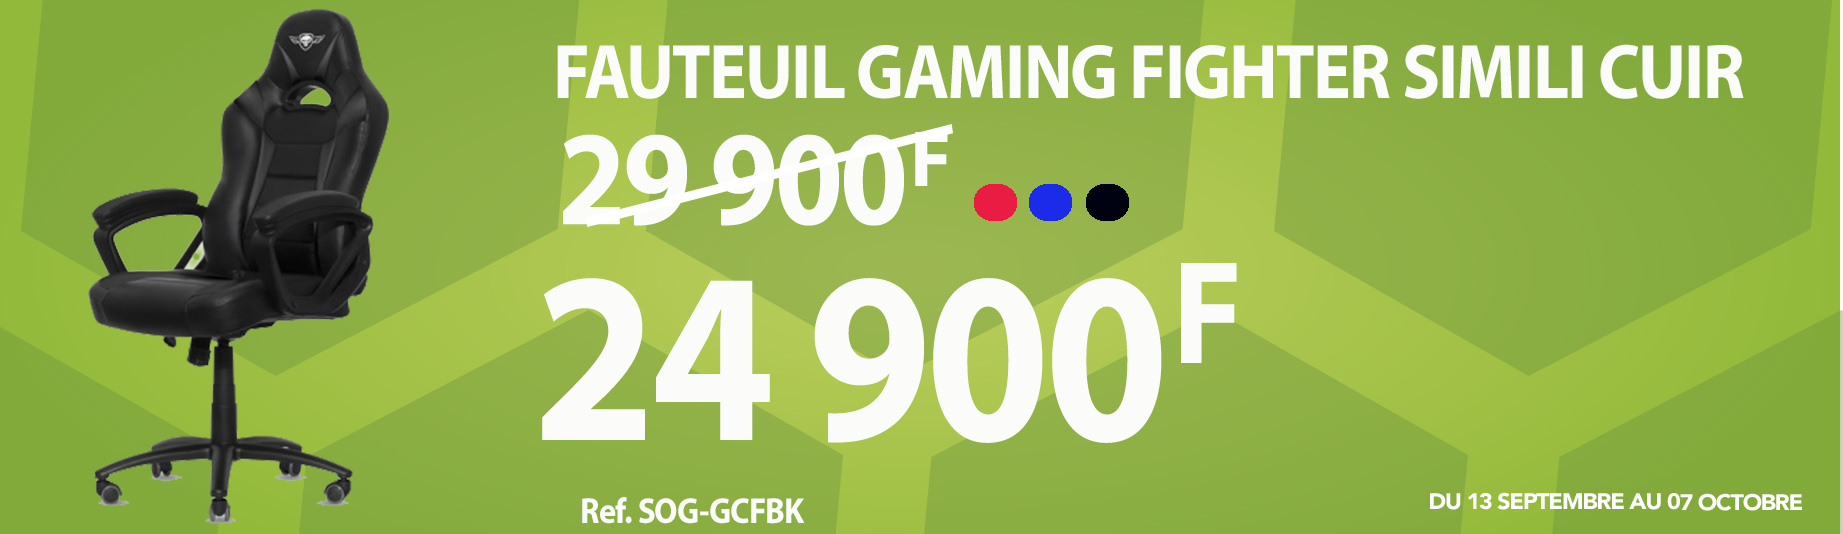 fauteuil_gaming_fighter_